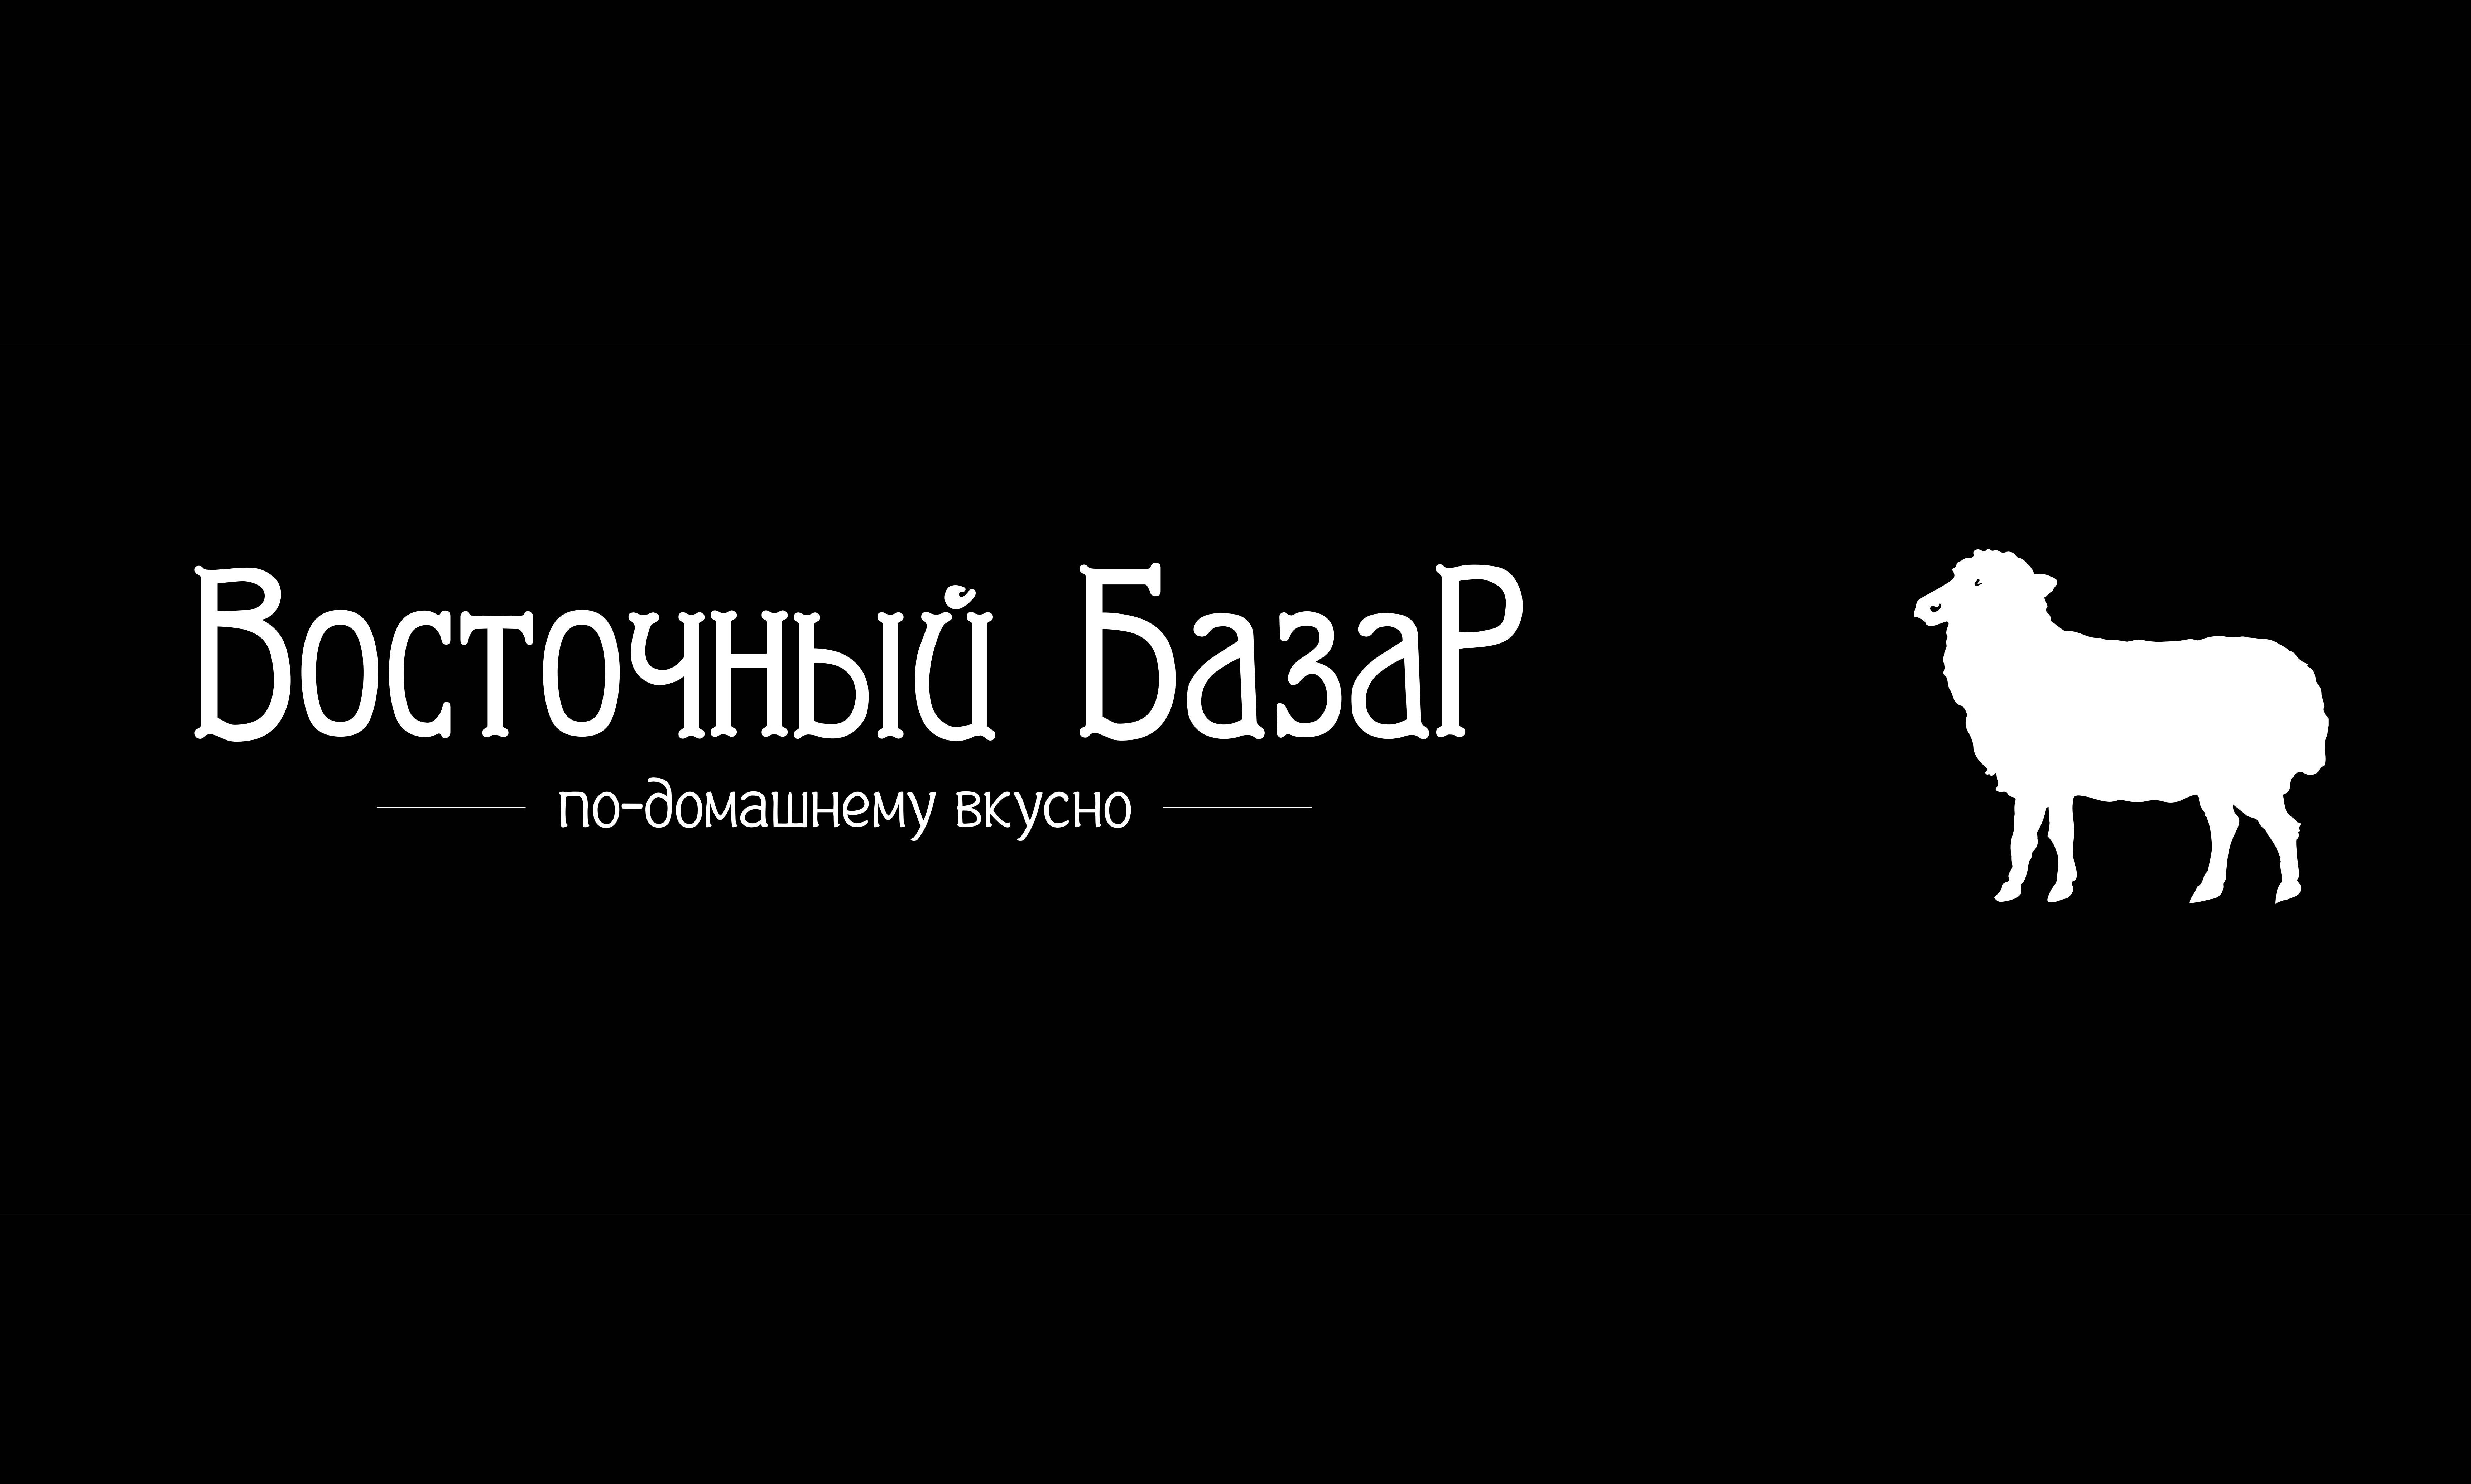 «Восточный базар» Кафе